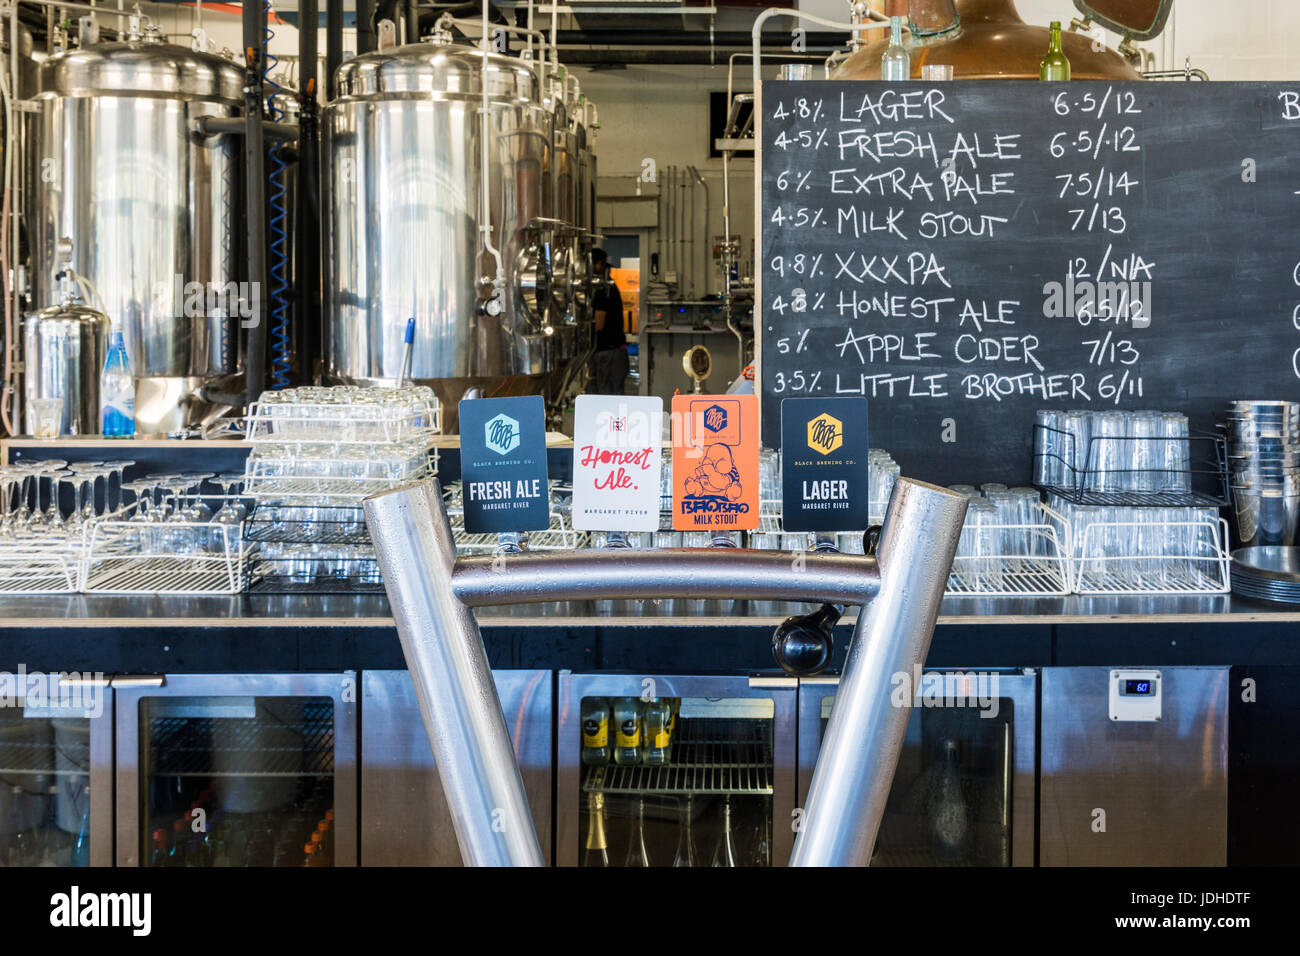 Beer taps and brewery at the Black Brewing Co. Wilyabrup, Margaret River, Western Australia - Stock Image